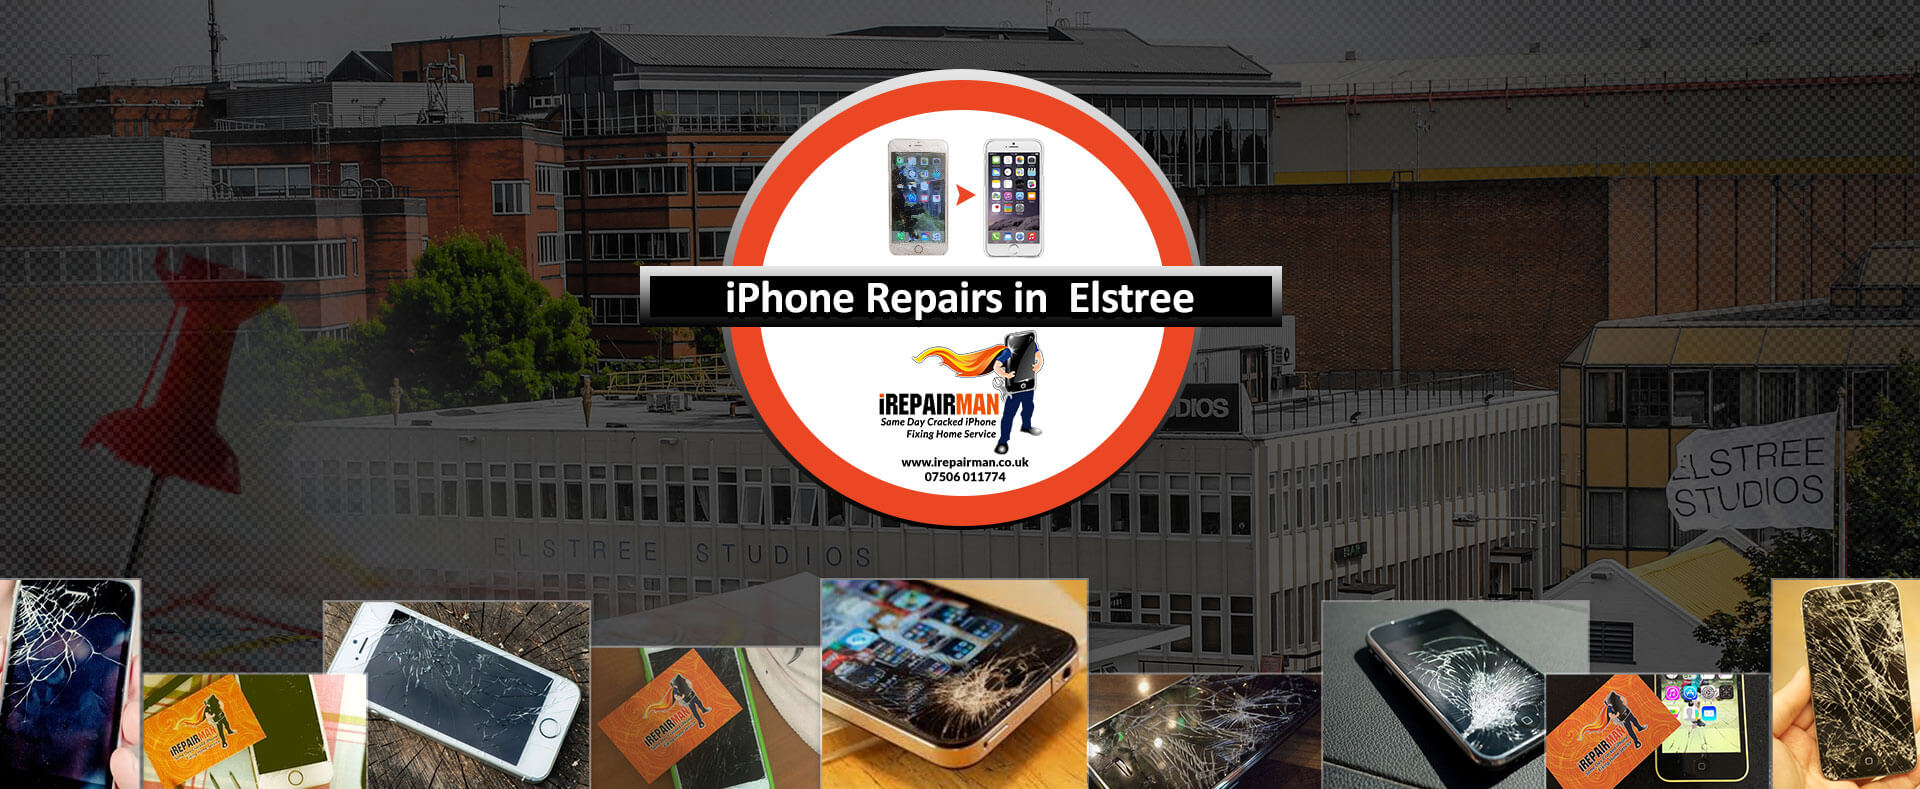 iPhone Repairs in Elstree